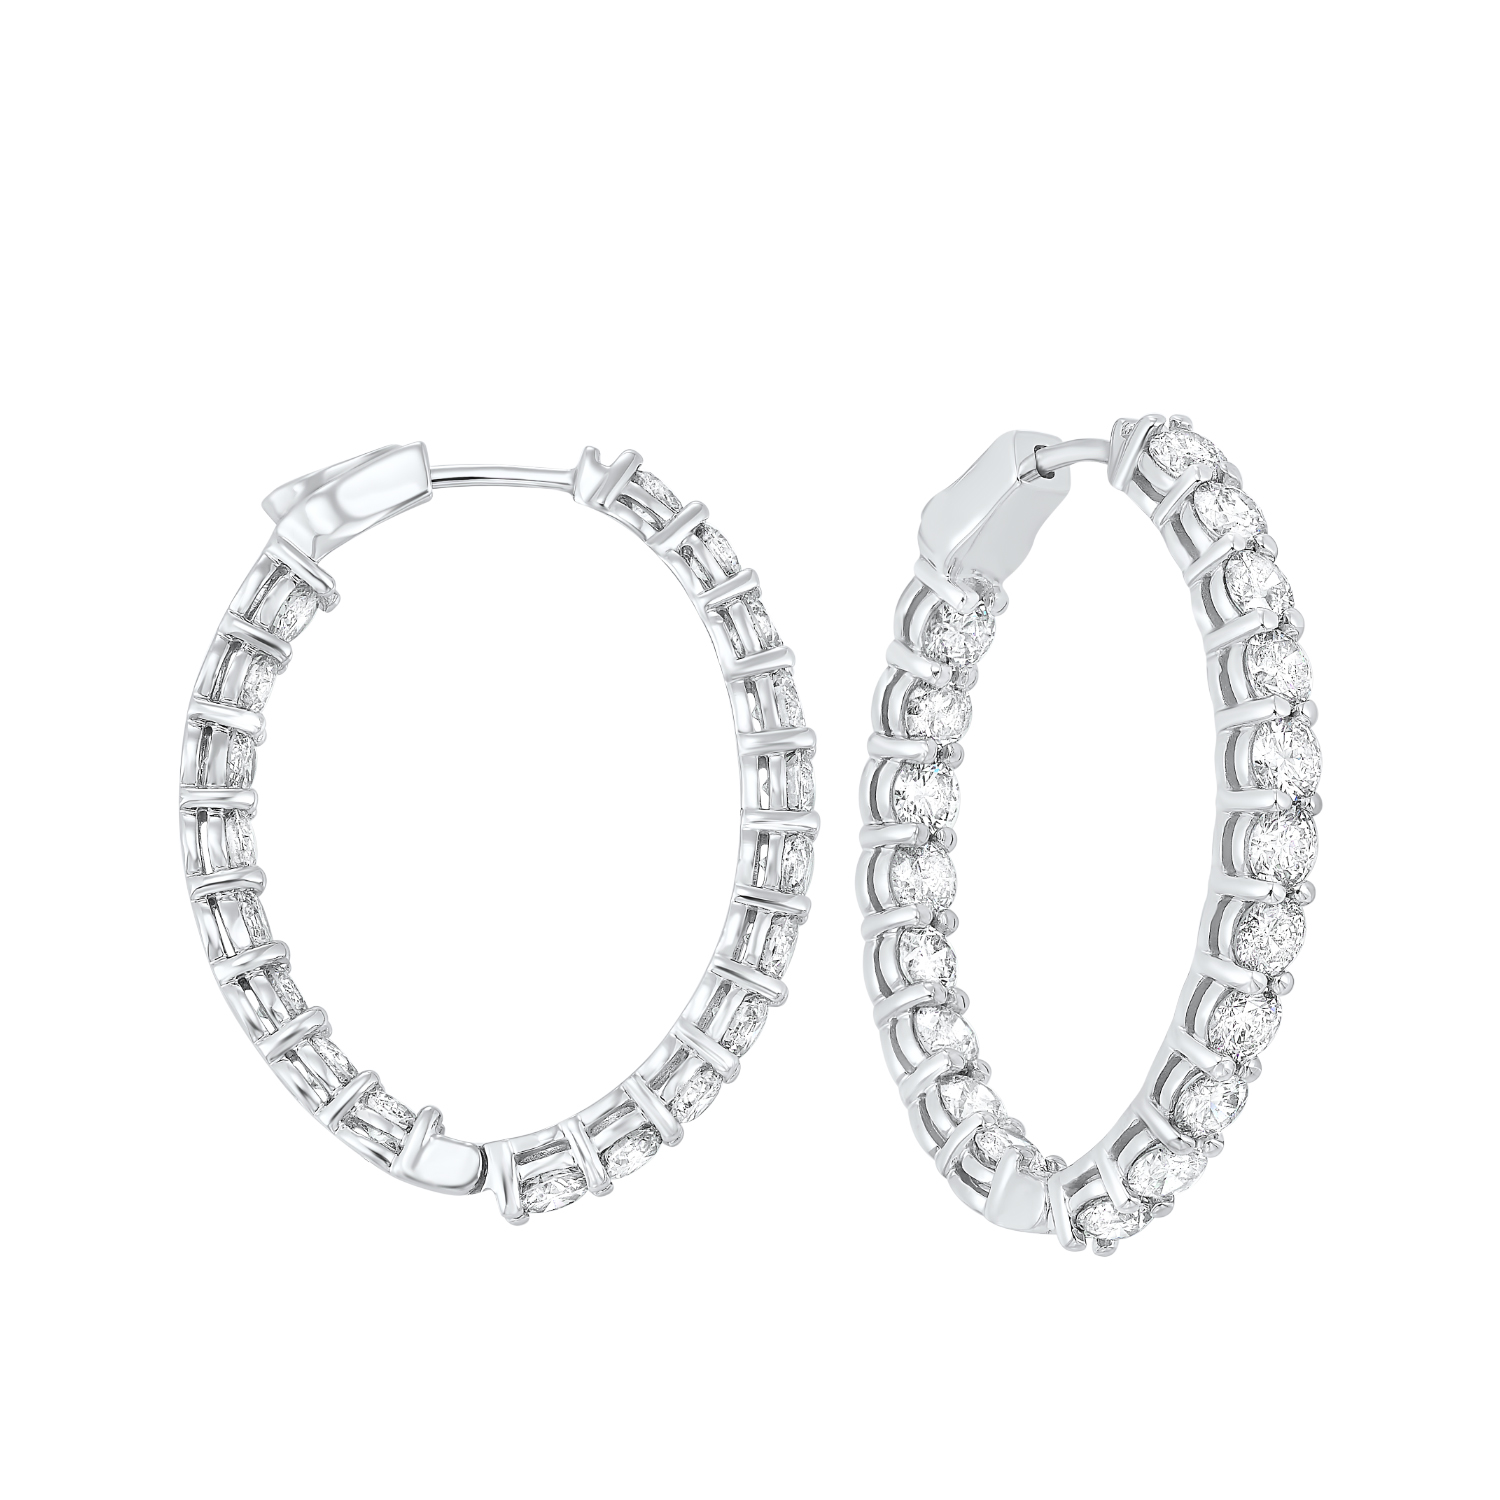 In-Out Diamond Hoop Earrings in 14K White Gold (7 ct. tw.) I2/I3 - H/K - Our beautiful  In-Out Diamond Hoop Earrings in 14K White Gold (7 ct. tw.)  is the perfect jewelry choice for you or your loved one. We have engagement rings, wedding bands, earrings, and so much more.